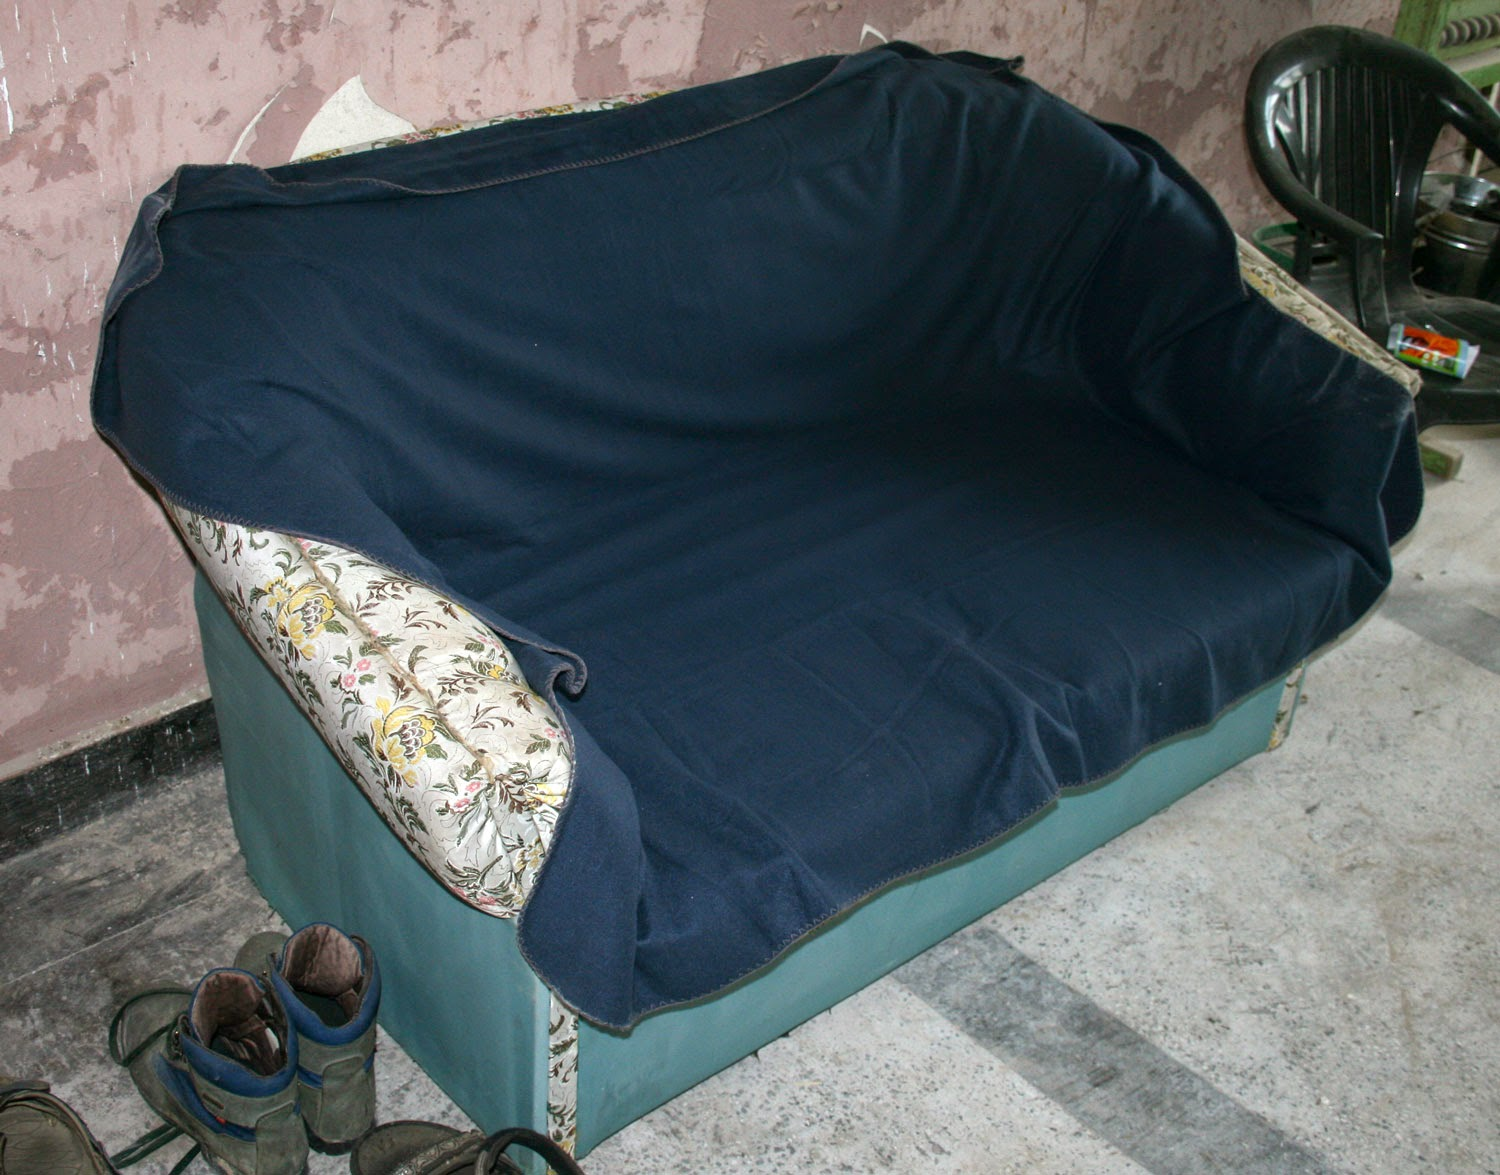 Sofa covered with a blue rug